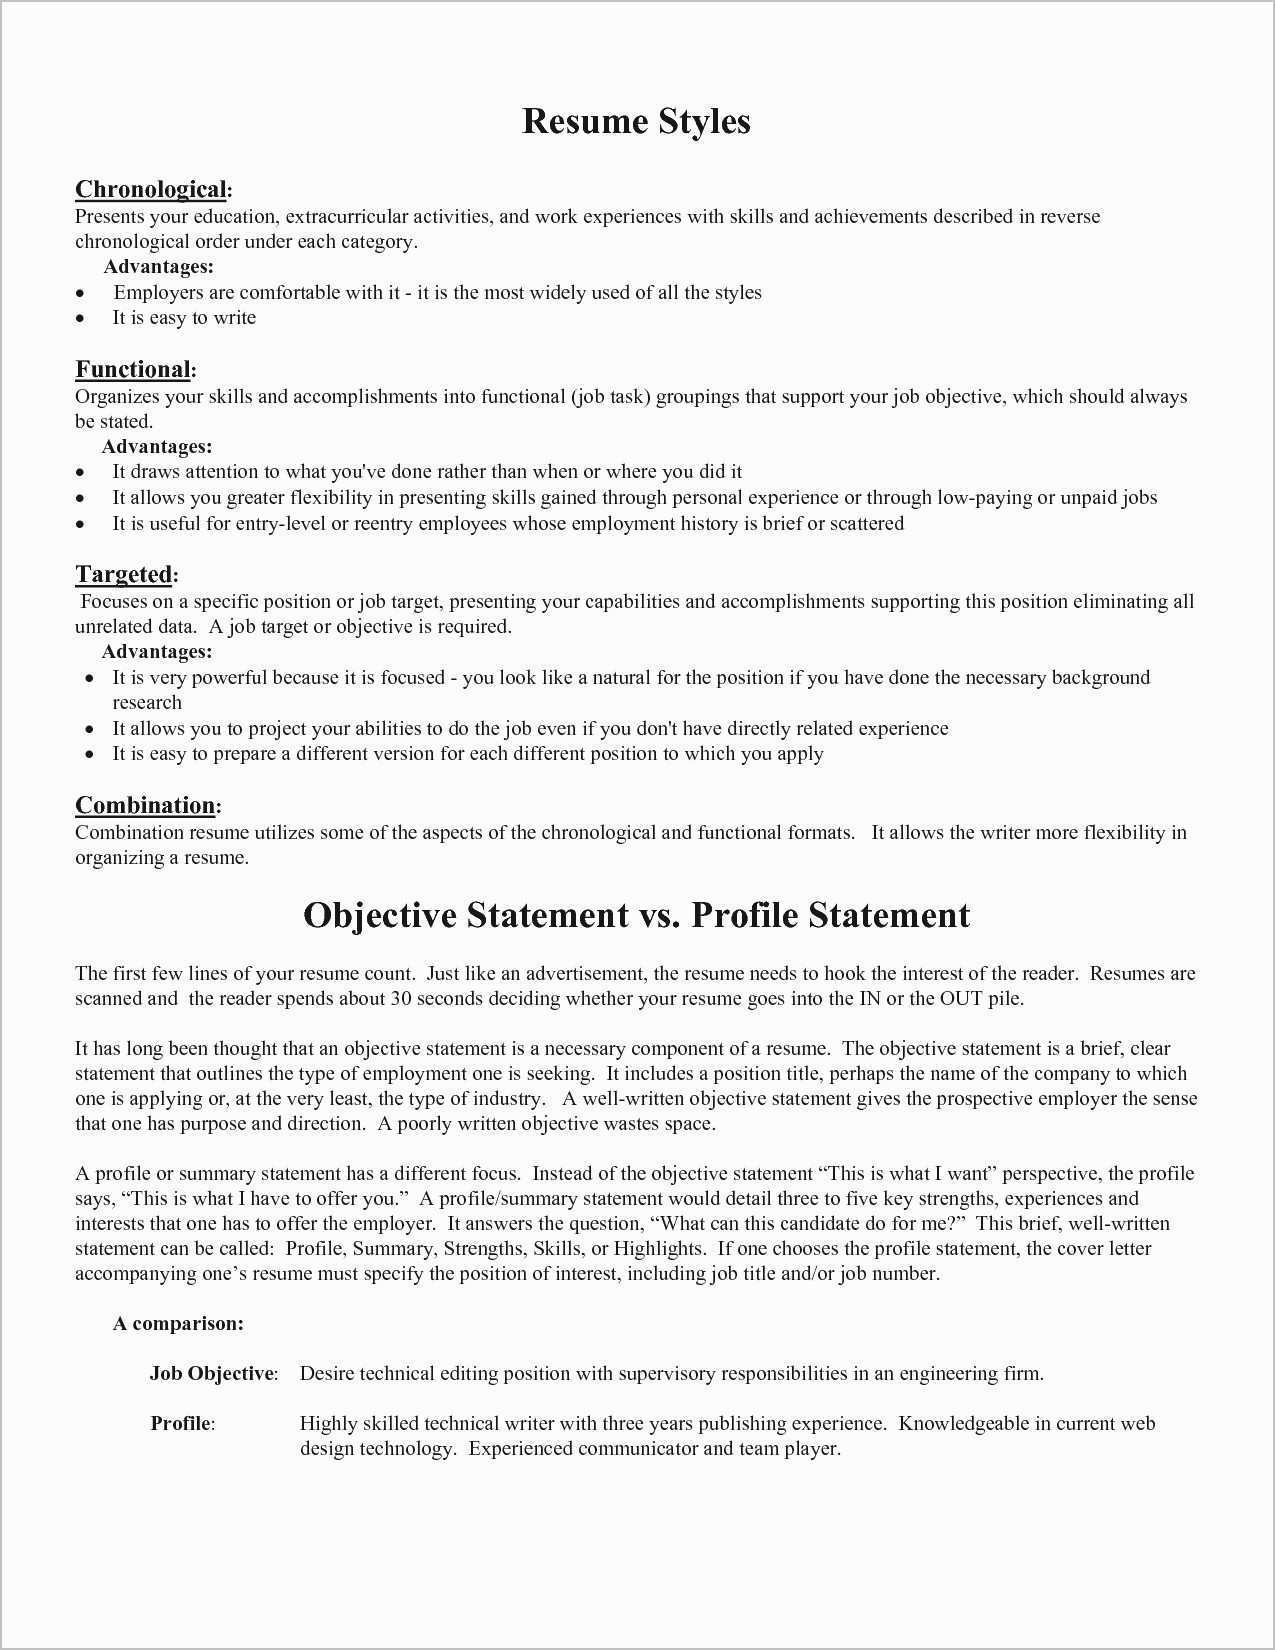 Section A Resume Fix My Resume Best Fresh Skills for A Resume